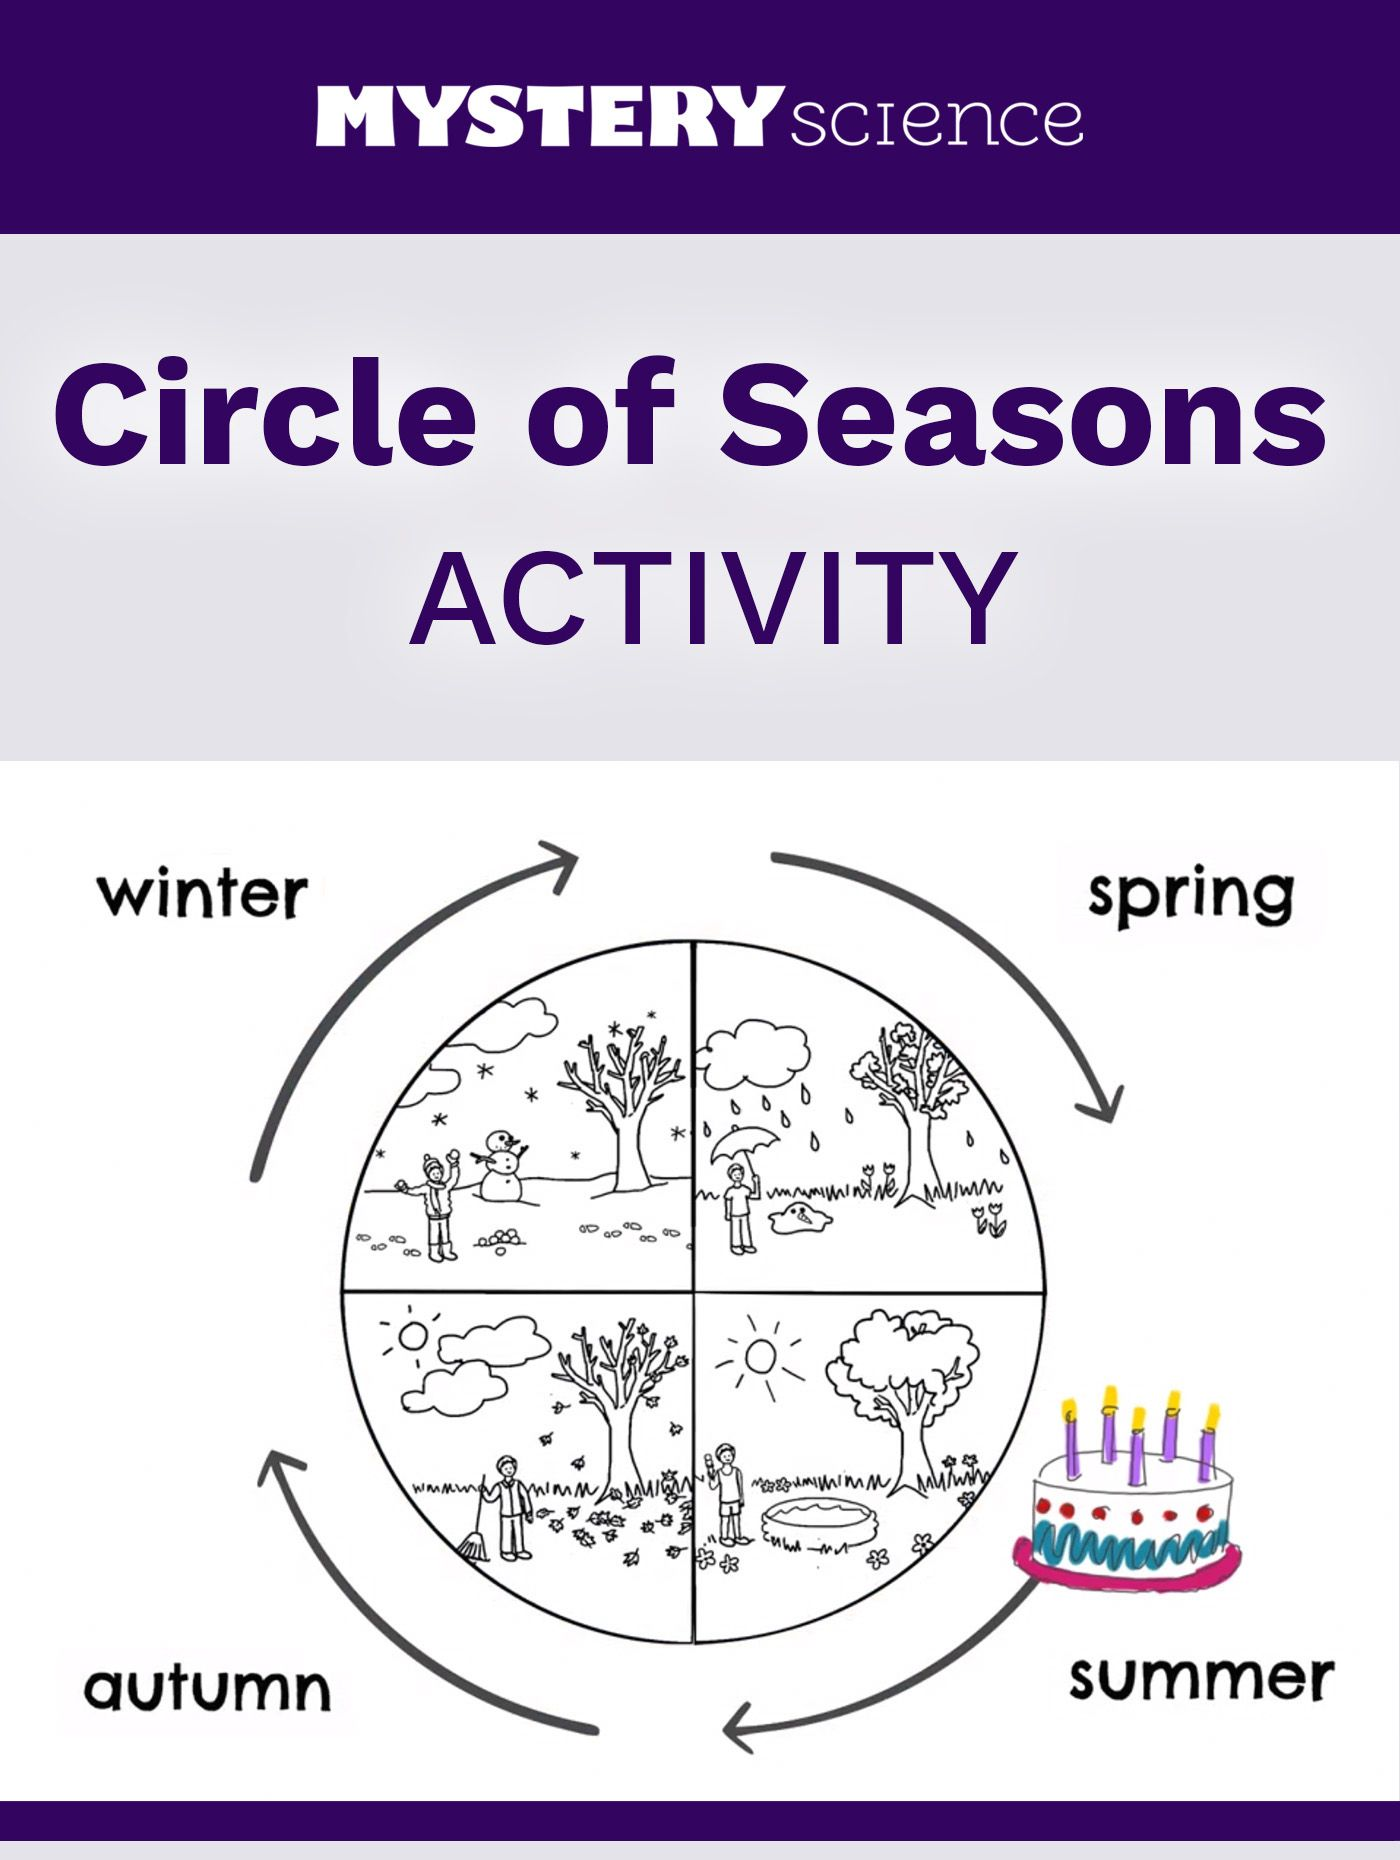 Circle Of Seasons Activity Free Hands On Science Activity For 0th And 1st Preschool Teaching Materials Science Activities Childrens Science Activities [ 1860 x 1400 Pixel ]